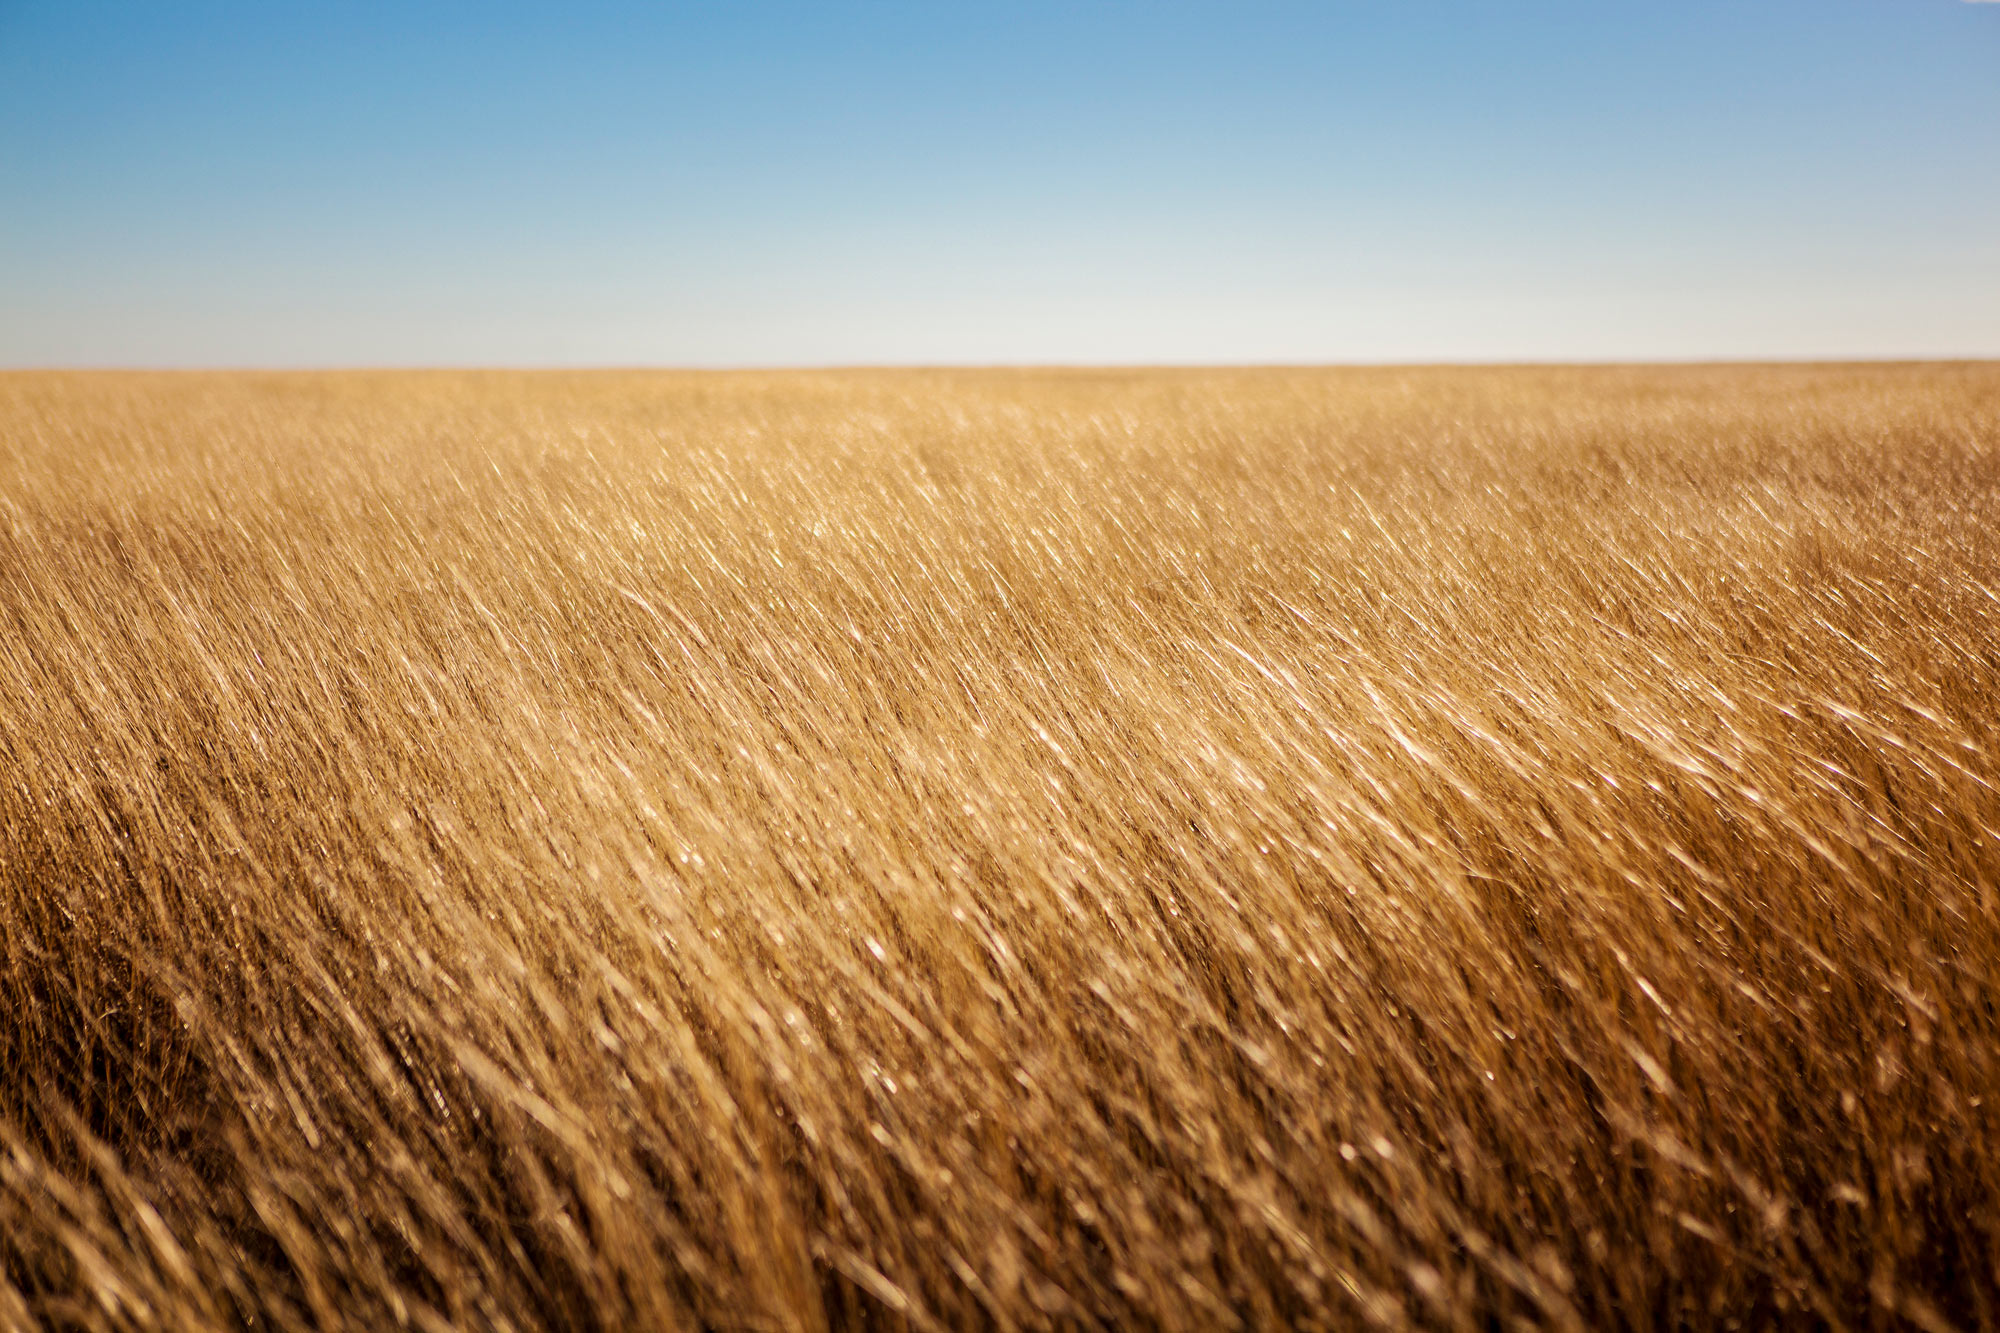 Tall golden grass and blue sky, Texas Panhandle